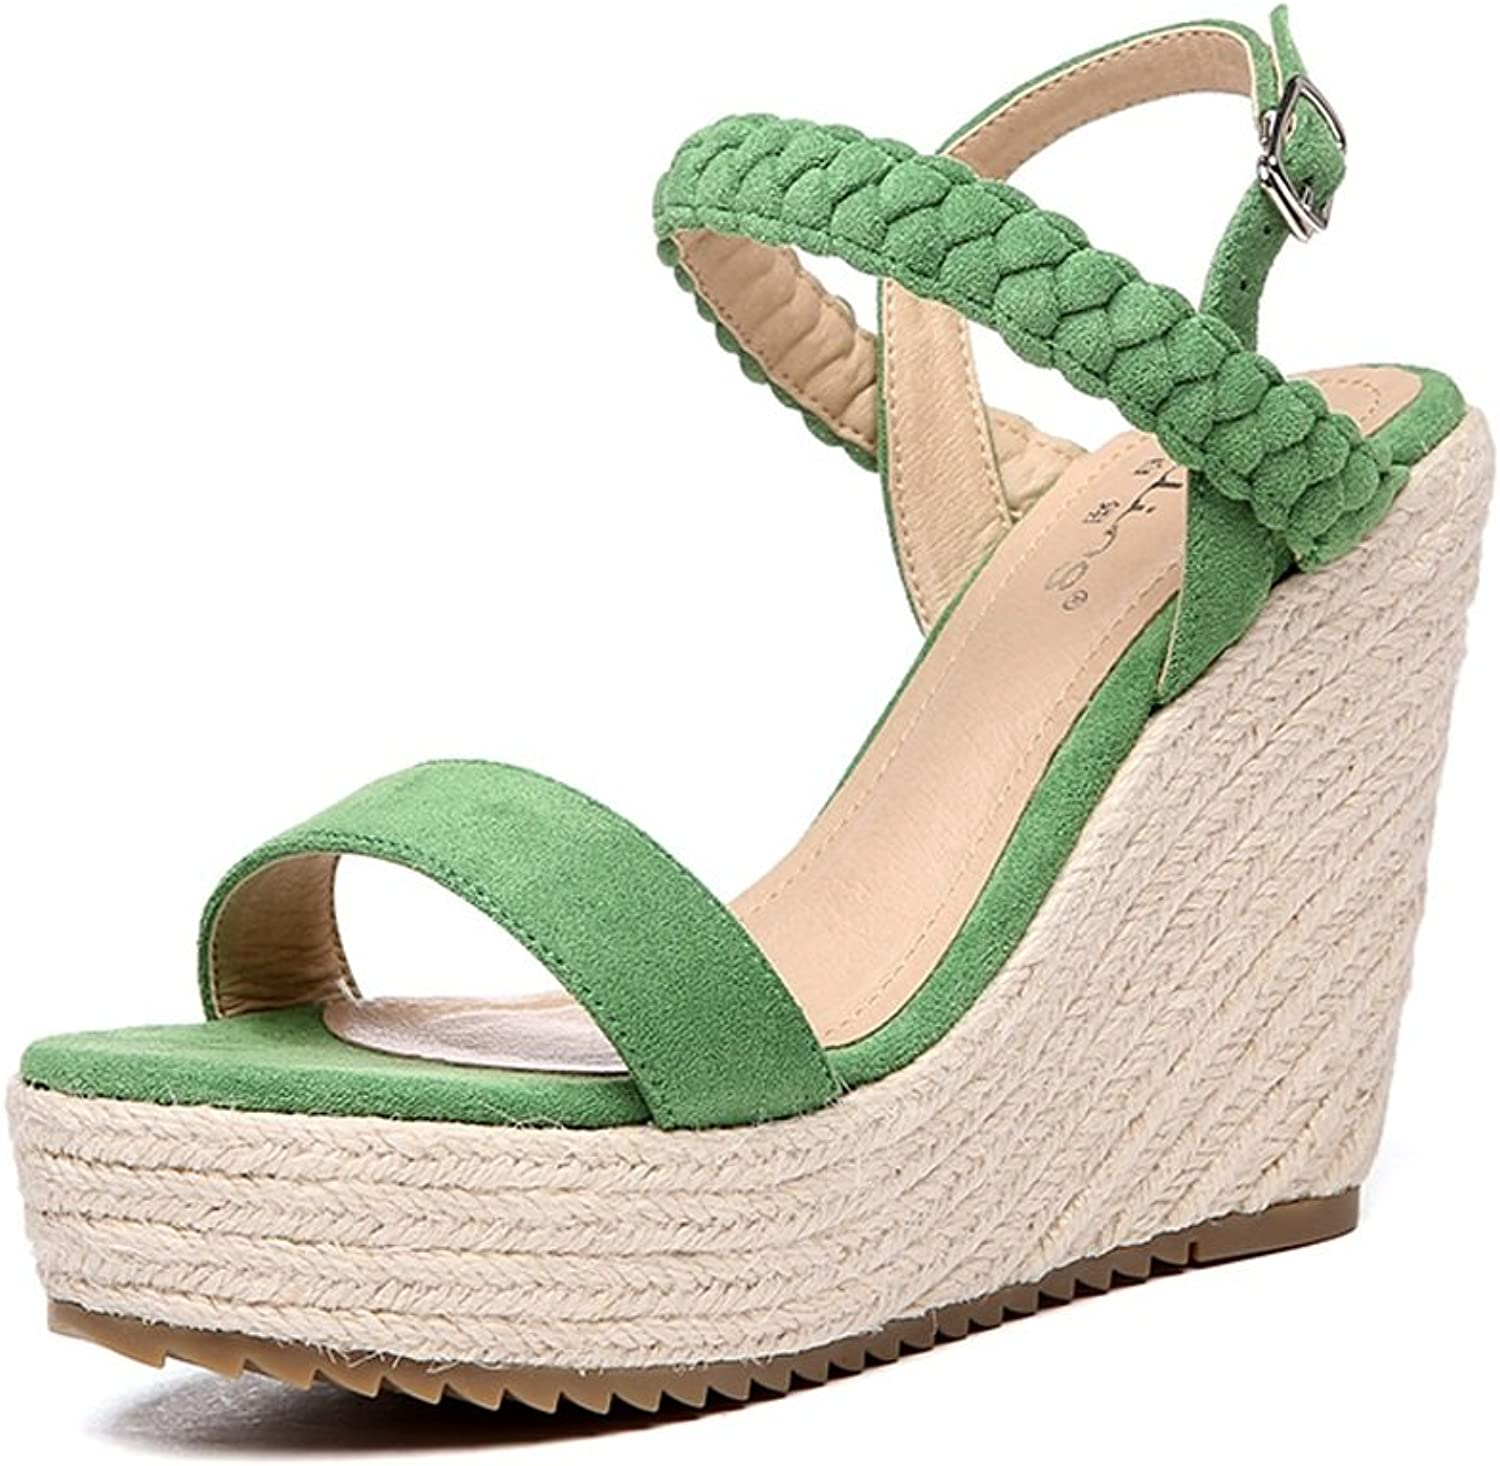 Rainbow high heels Summer Fashion shoes with Green Waterproof Knitting Green Sandals